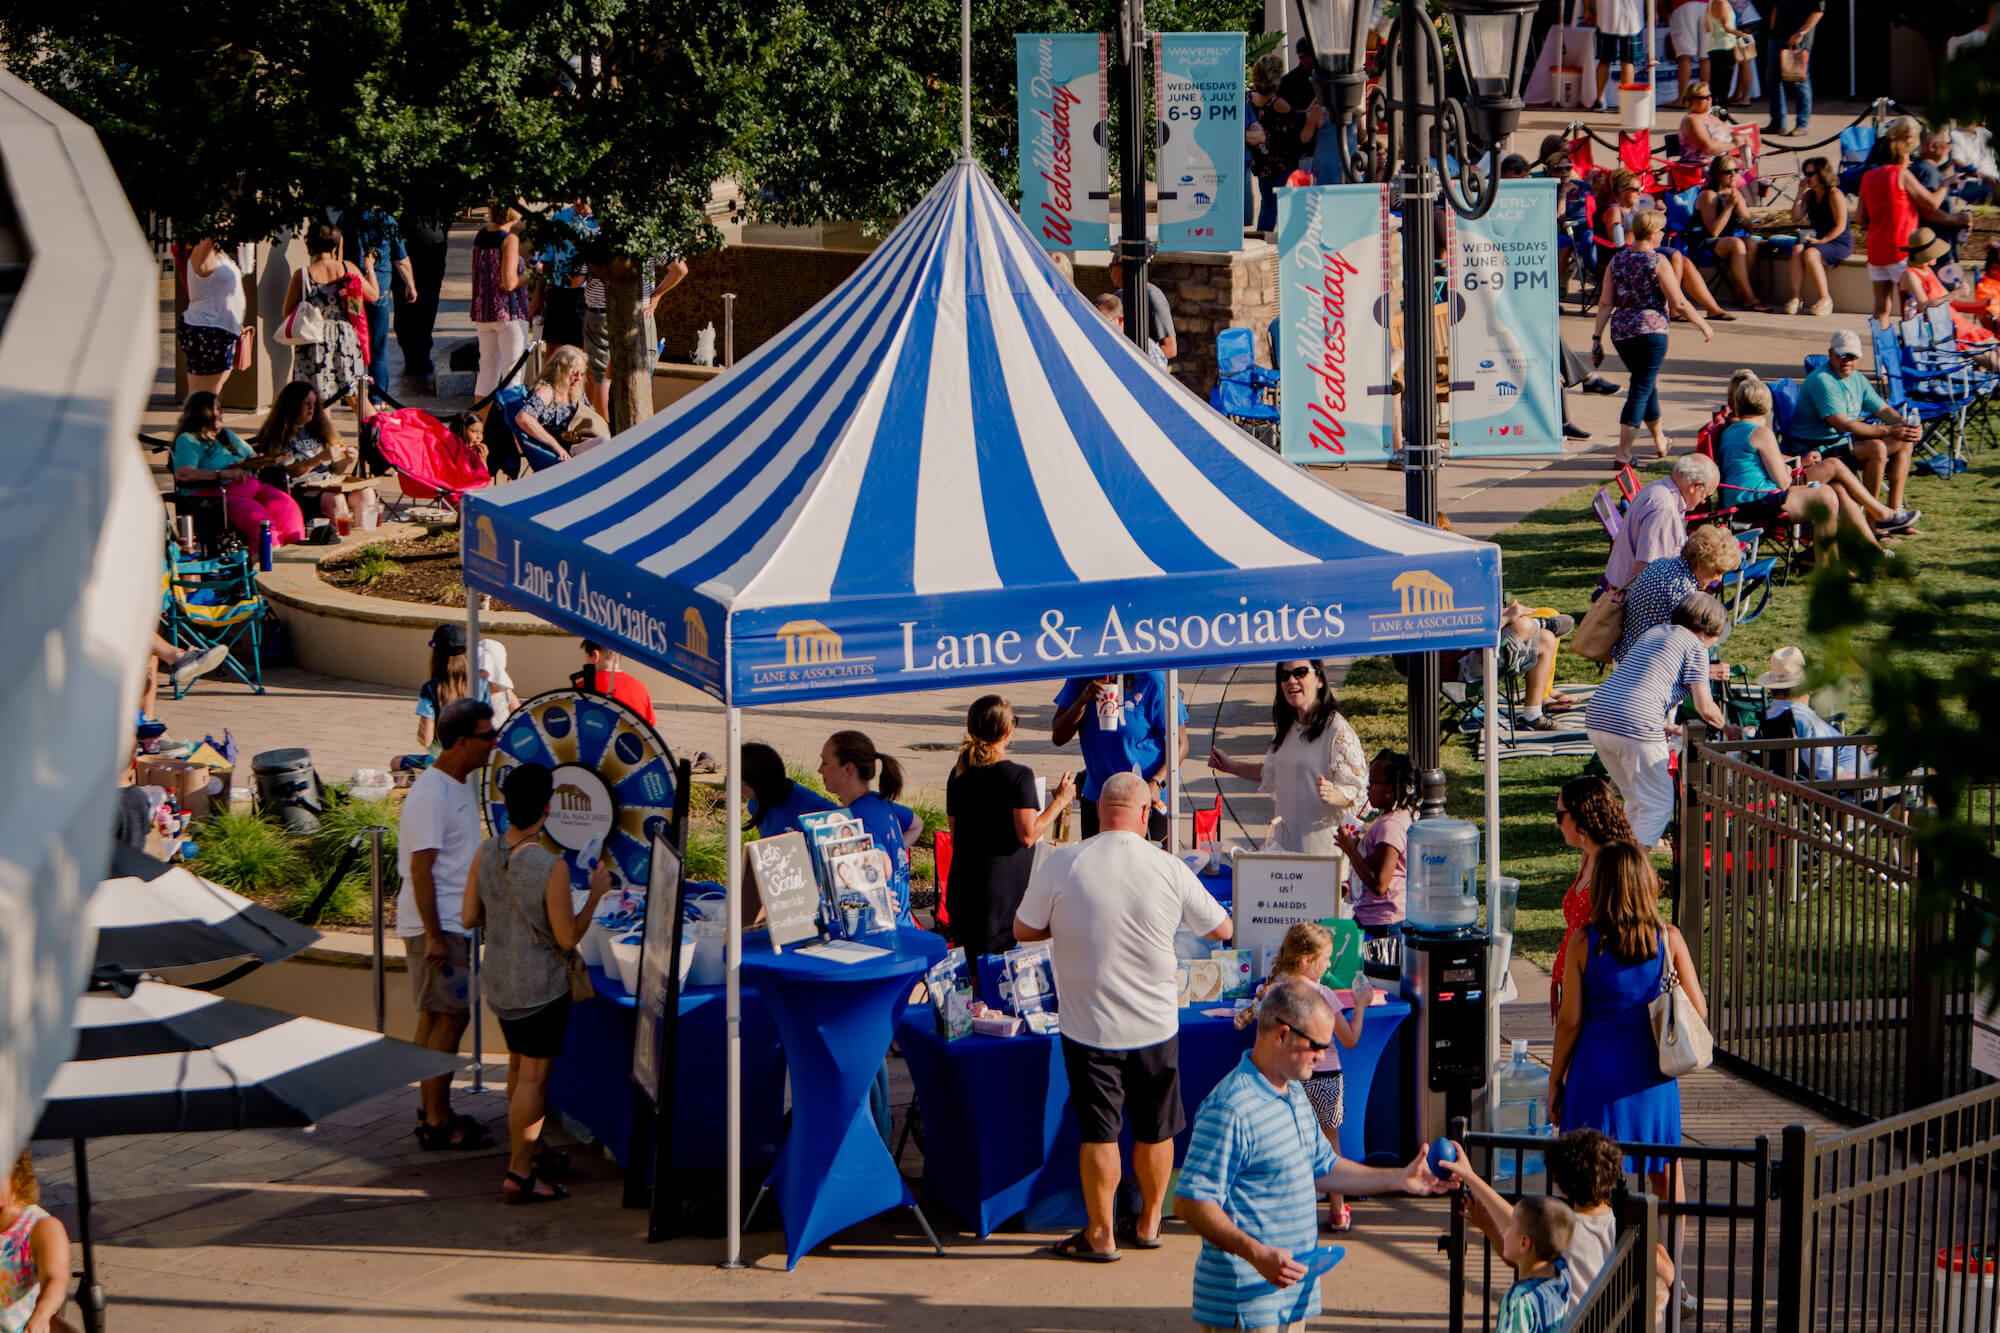 Lane dentistry tent at Wind Down Wednesday in Cary